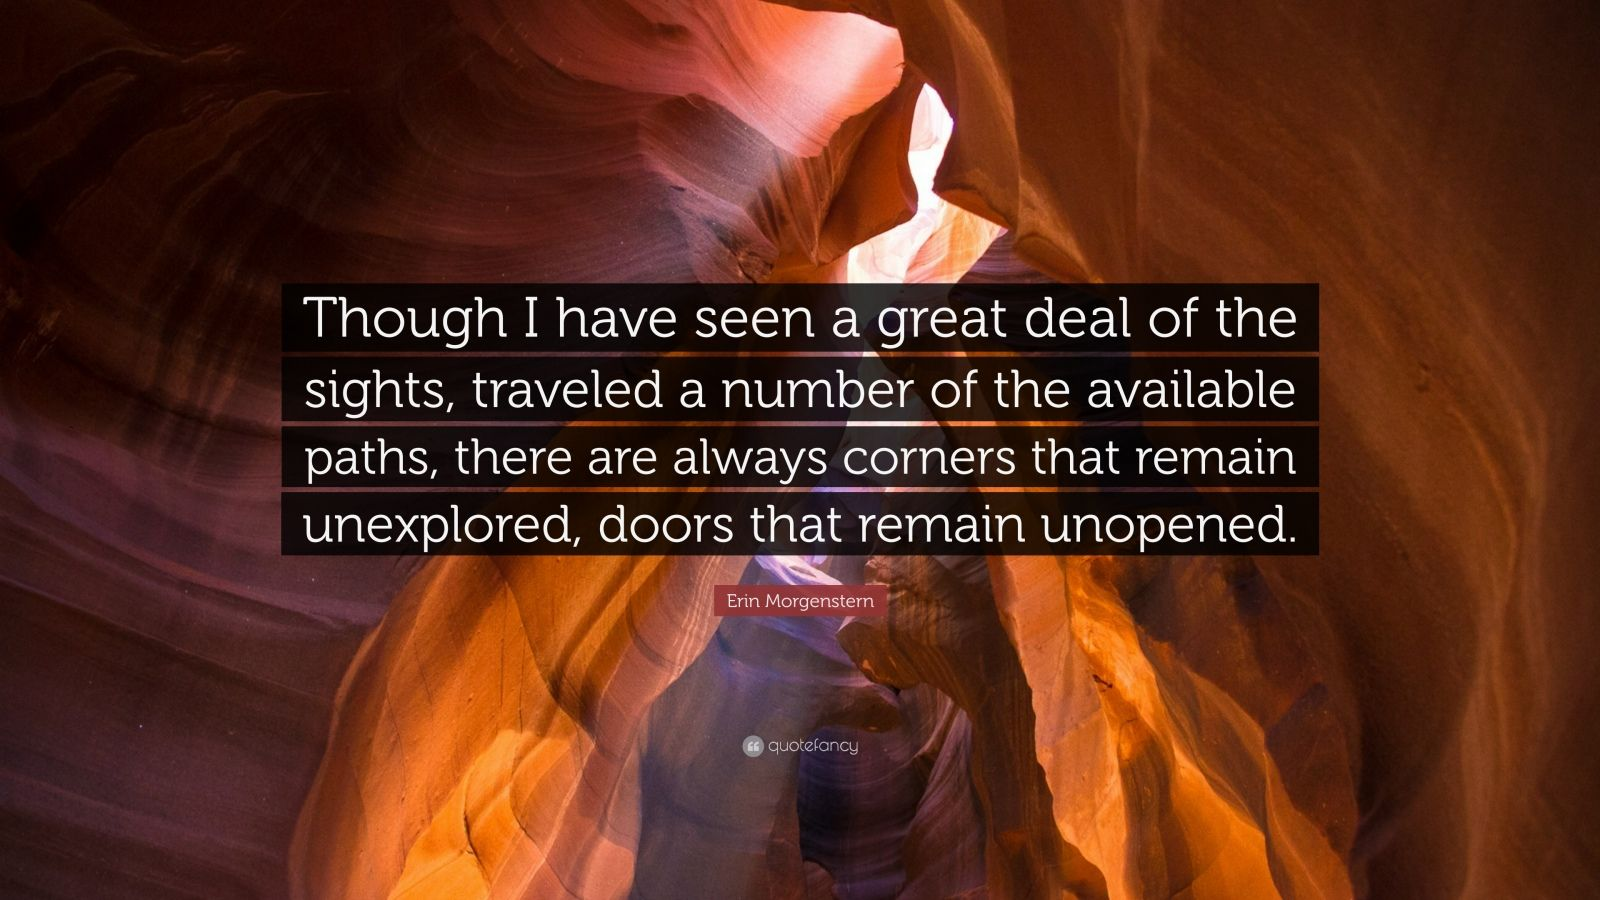 """Erin Morgenstern Quote: """"Though I have seen a great deal of the sights, traveled a number of the available paths, there are always corners that remain unexplored, doors that remain unopened."""""""